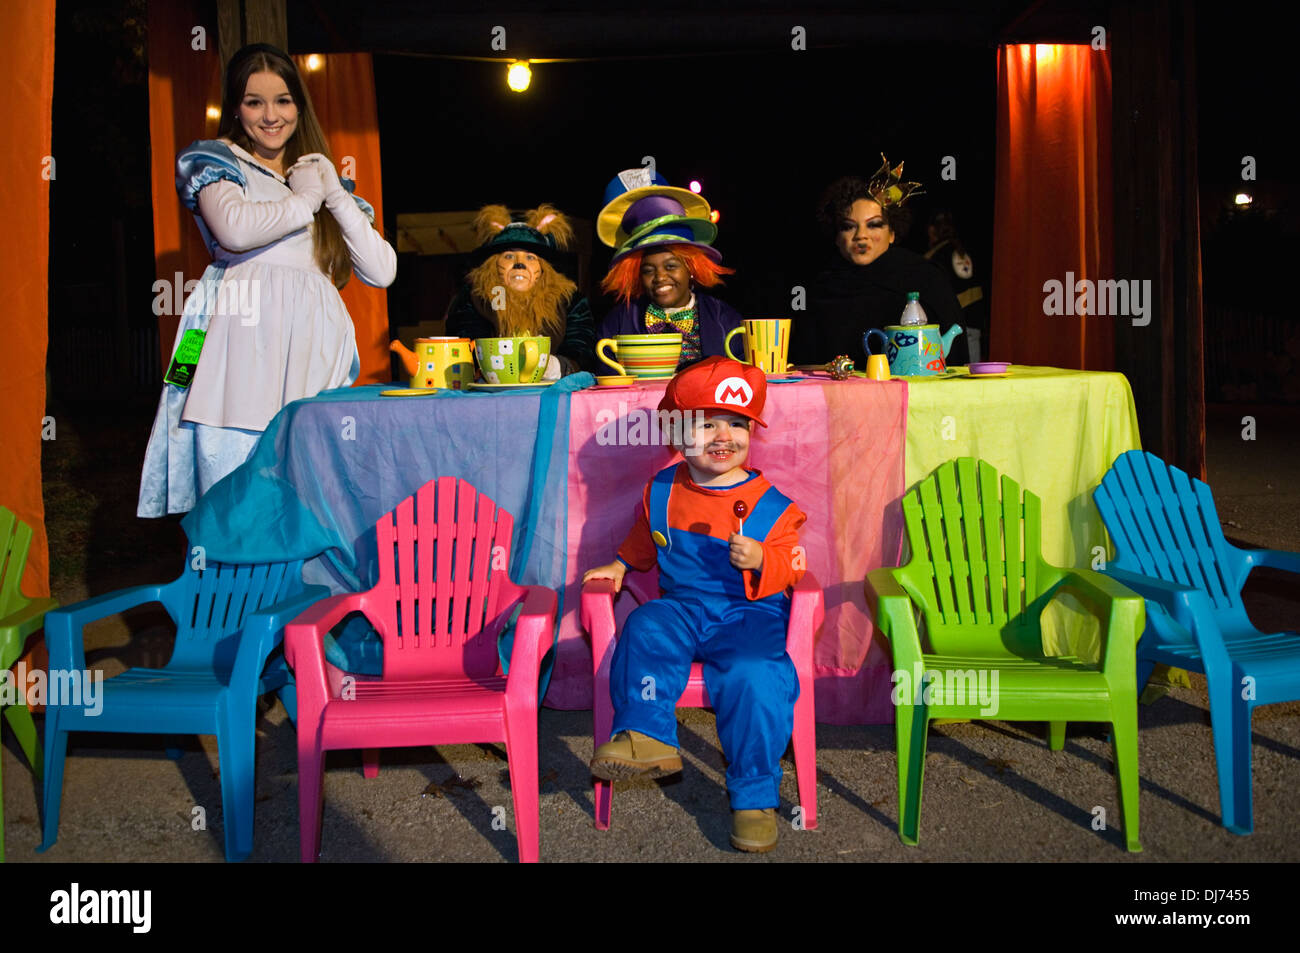 Toddler Dressed Up as Mario for Halloween with Charactors from Alice in Wonderland at the Louisville Zoo Halloween Party - Stock Image